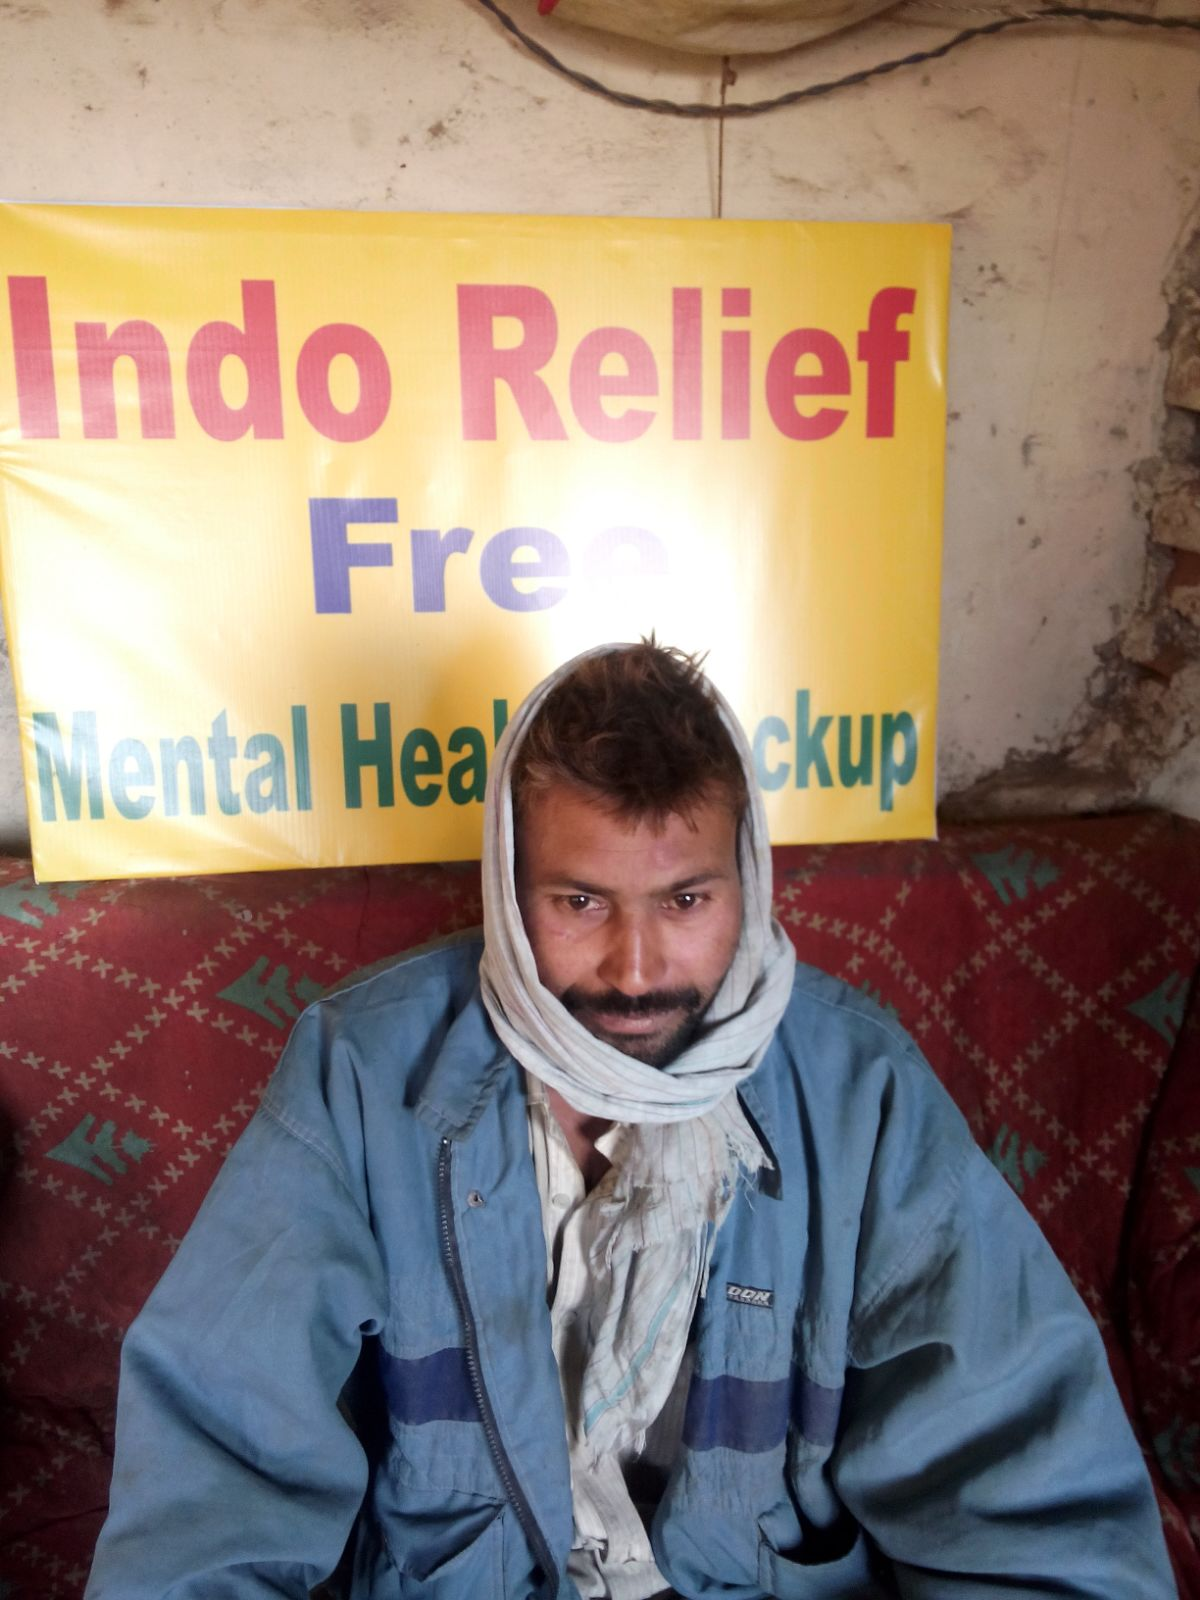 This is Brajesh. He suffers from insomnia and wants to speak with a psychologist to get help.